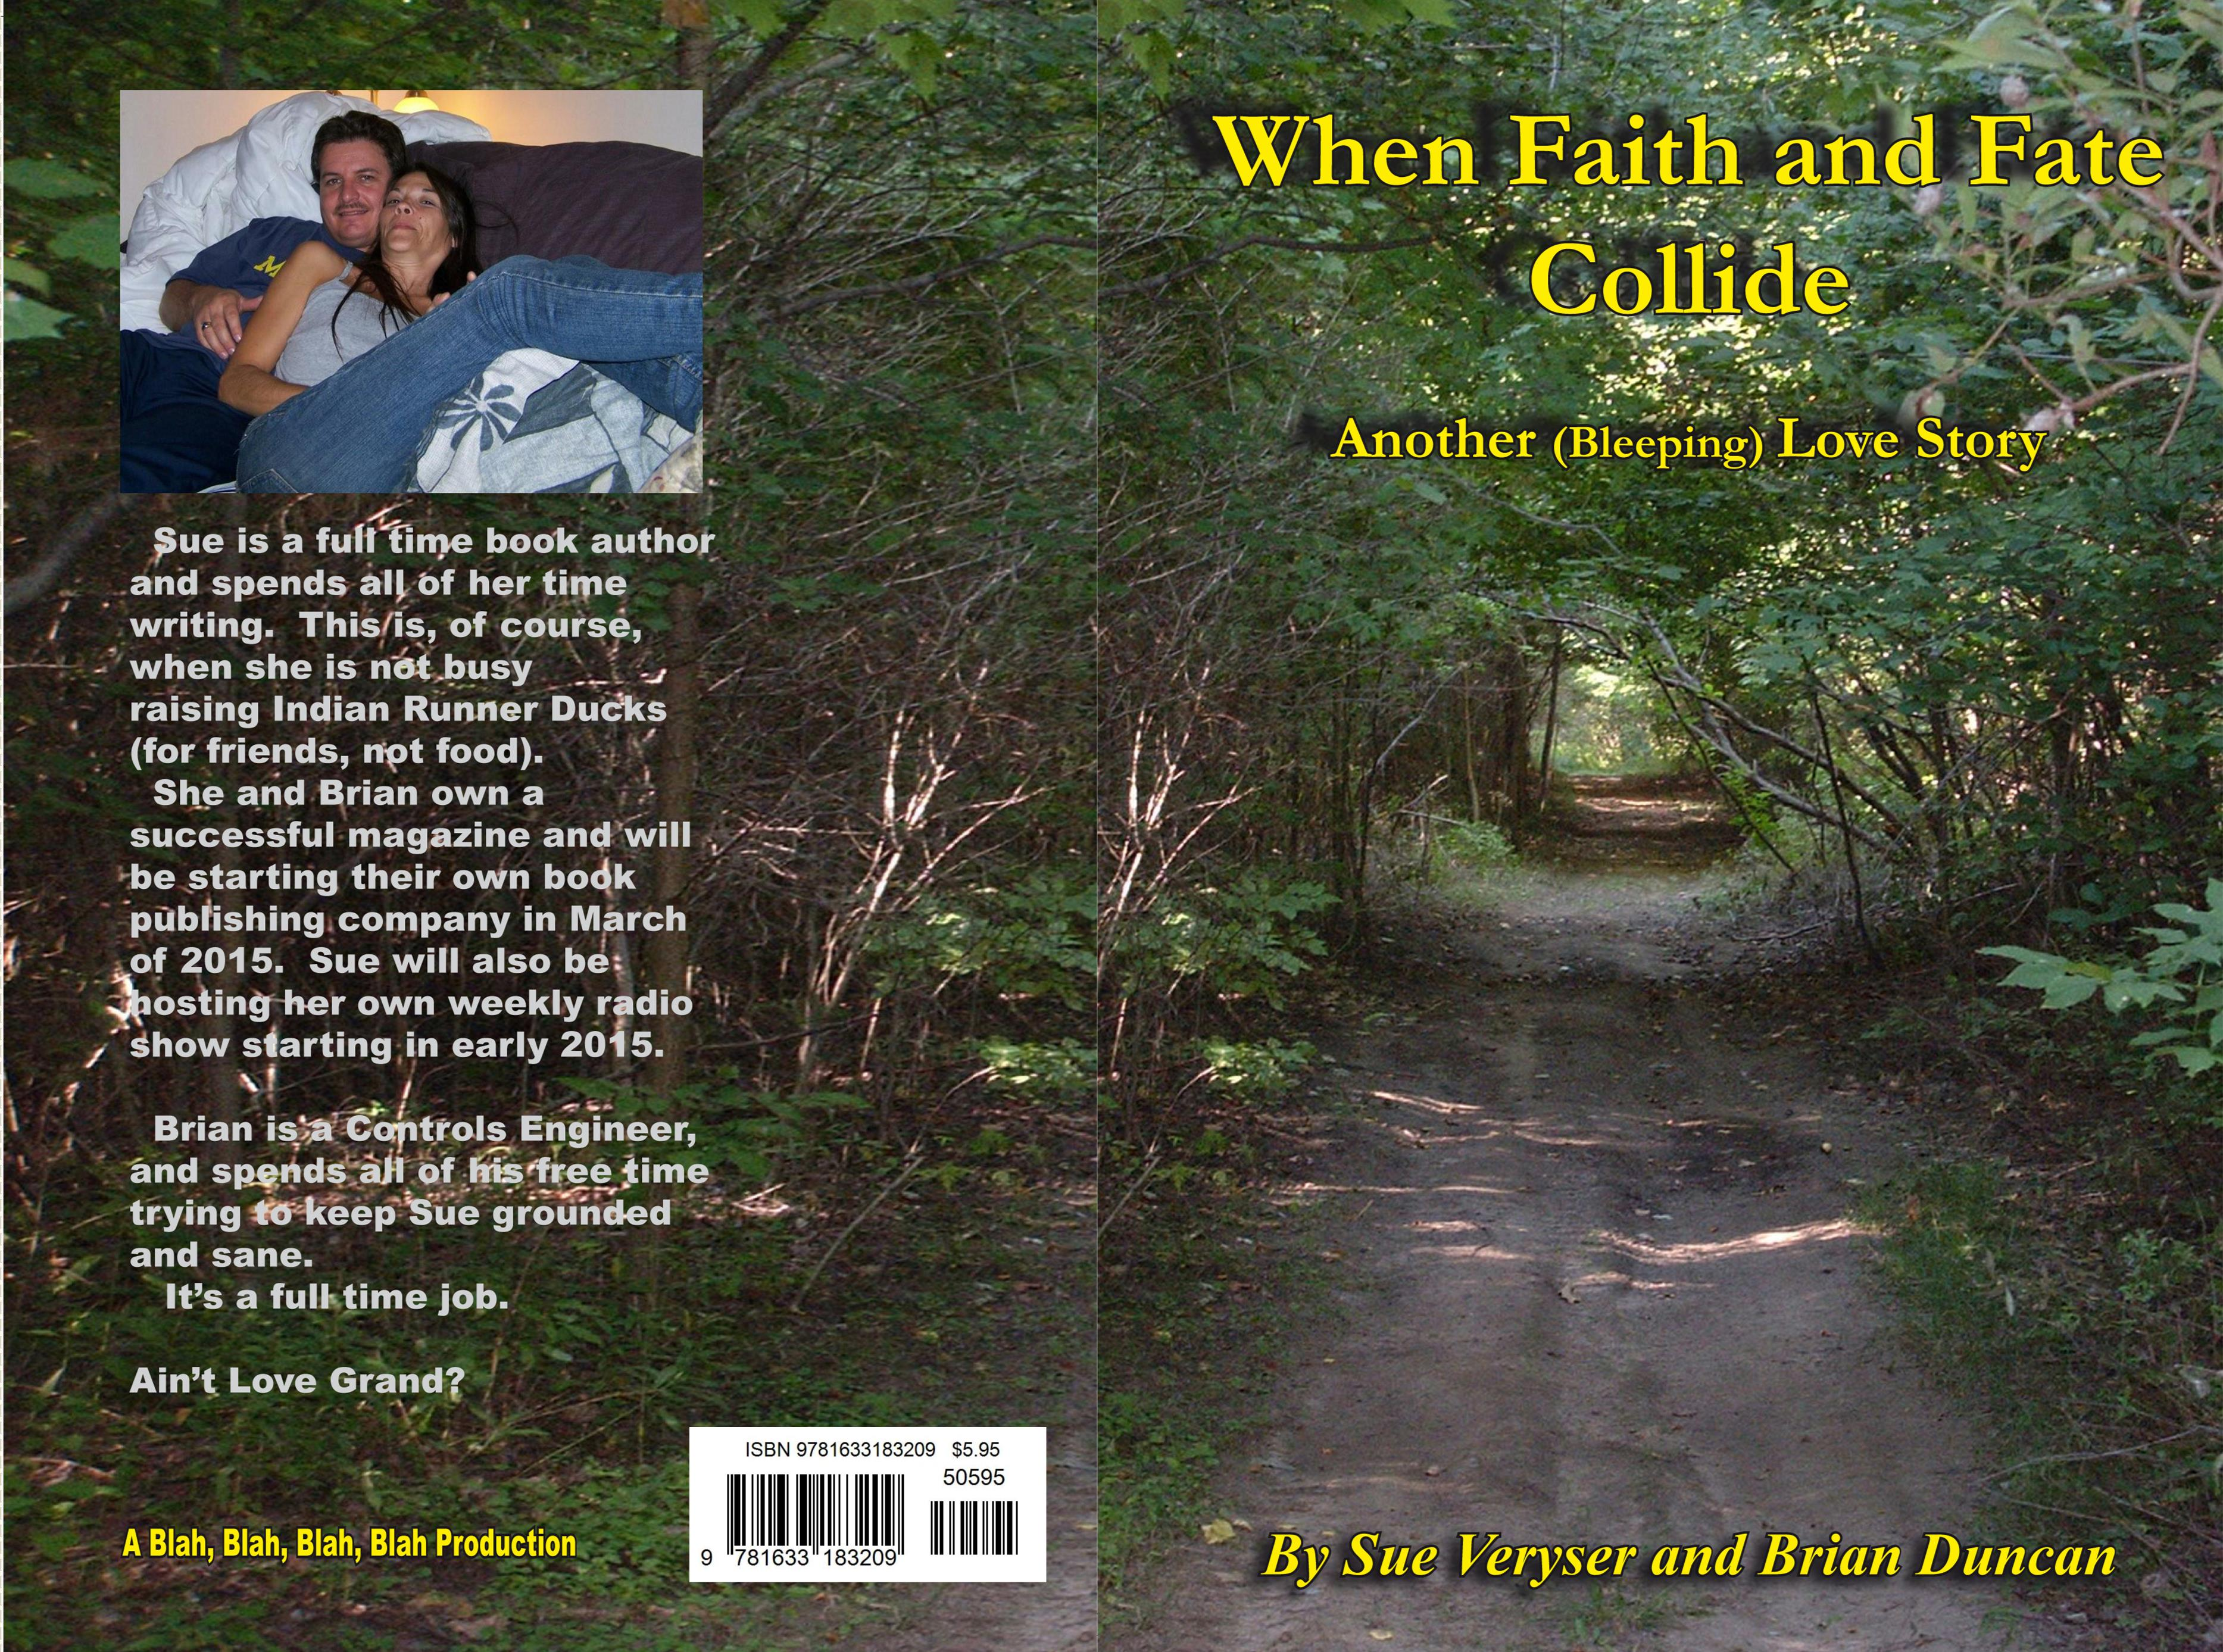 When Faith and Fate Collide cover image